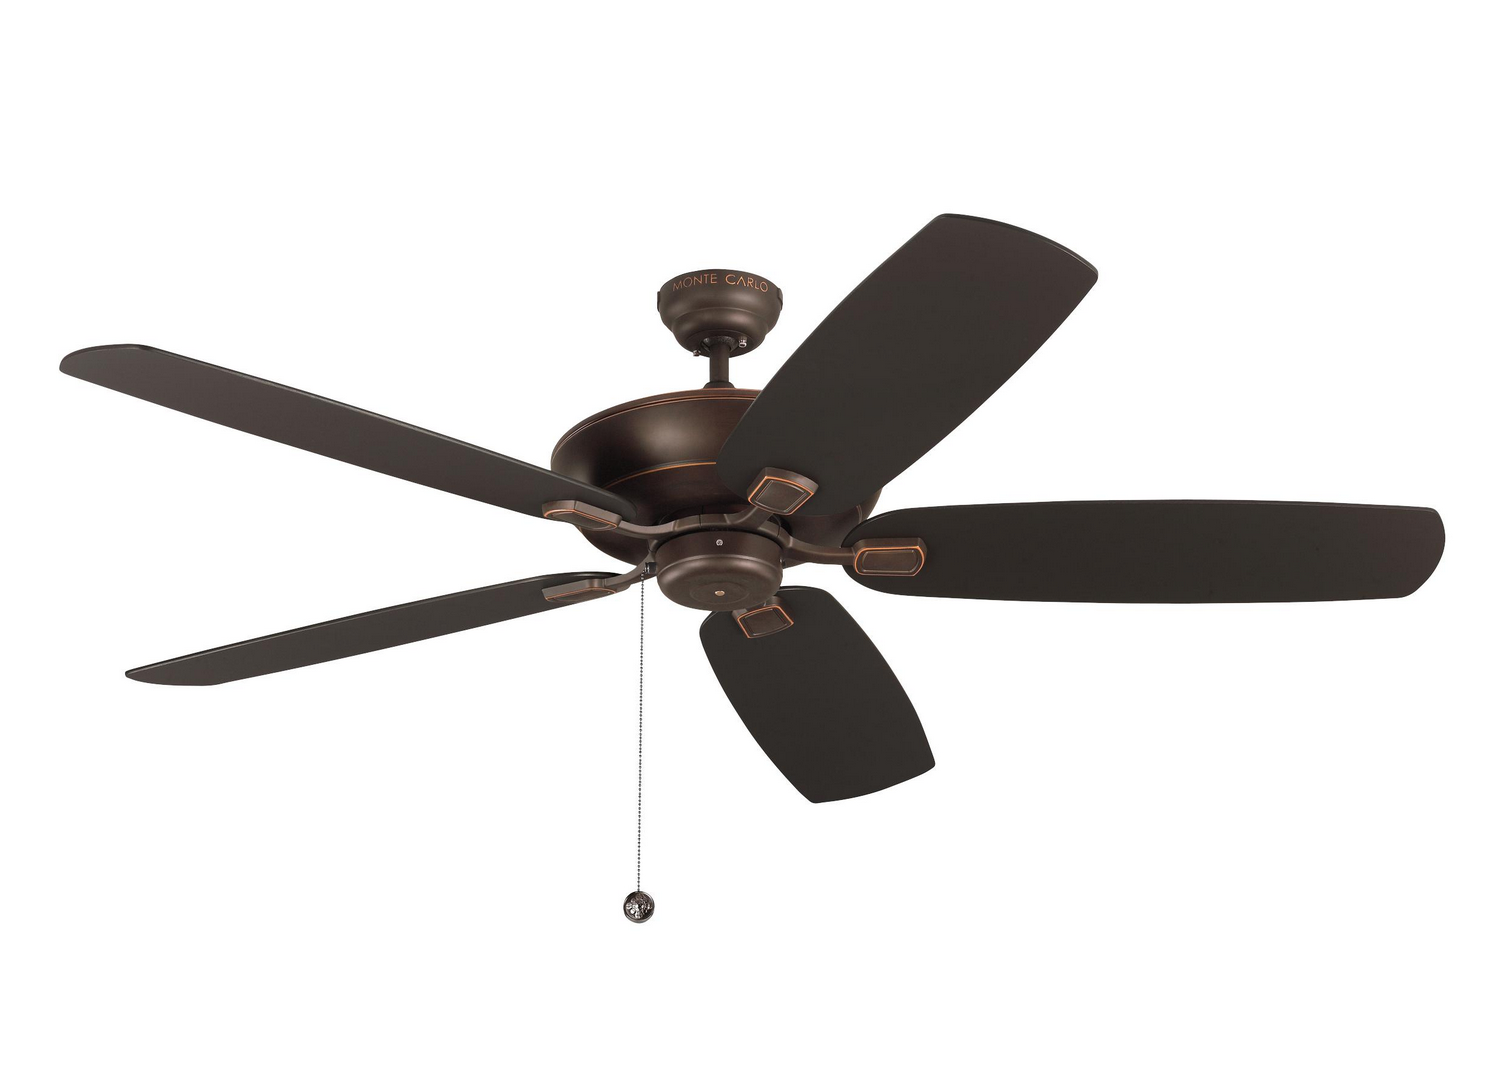 60 inchCeiling Fan from the Colony Super Max collection by Monte Carlo 5CSM60RB